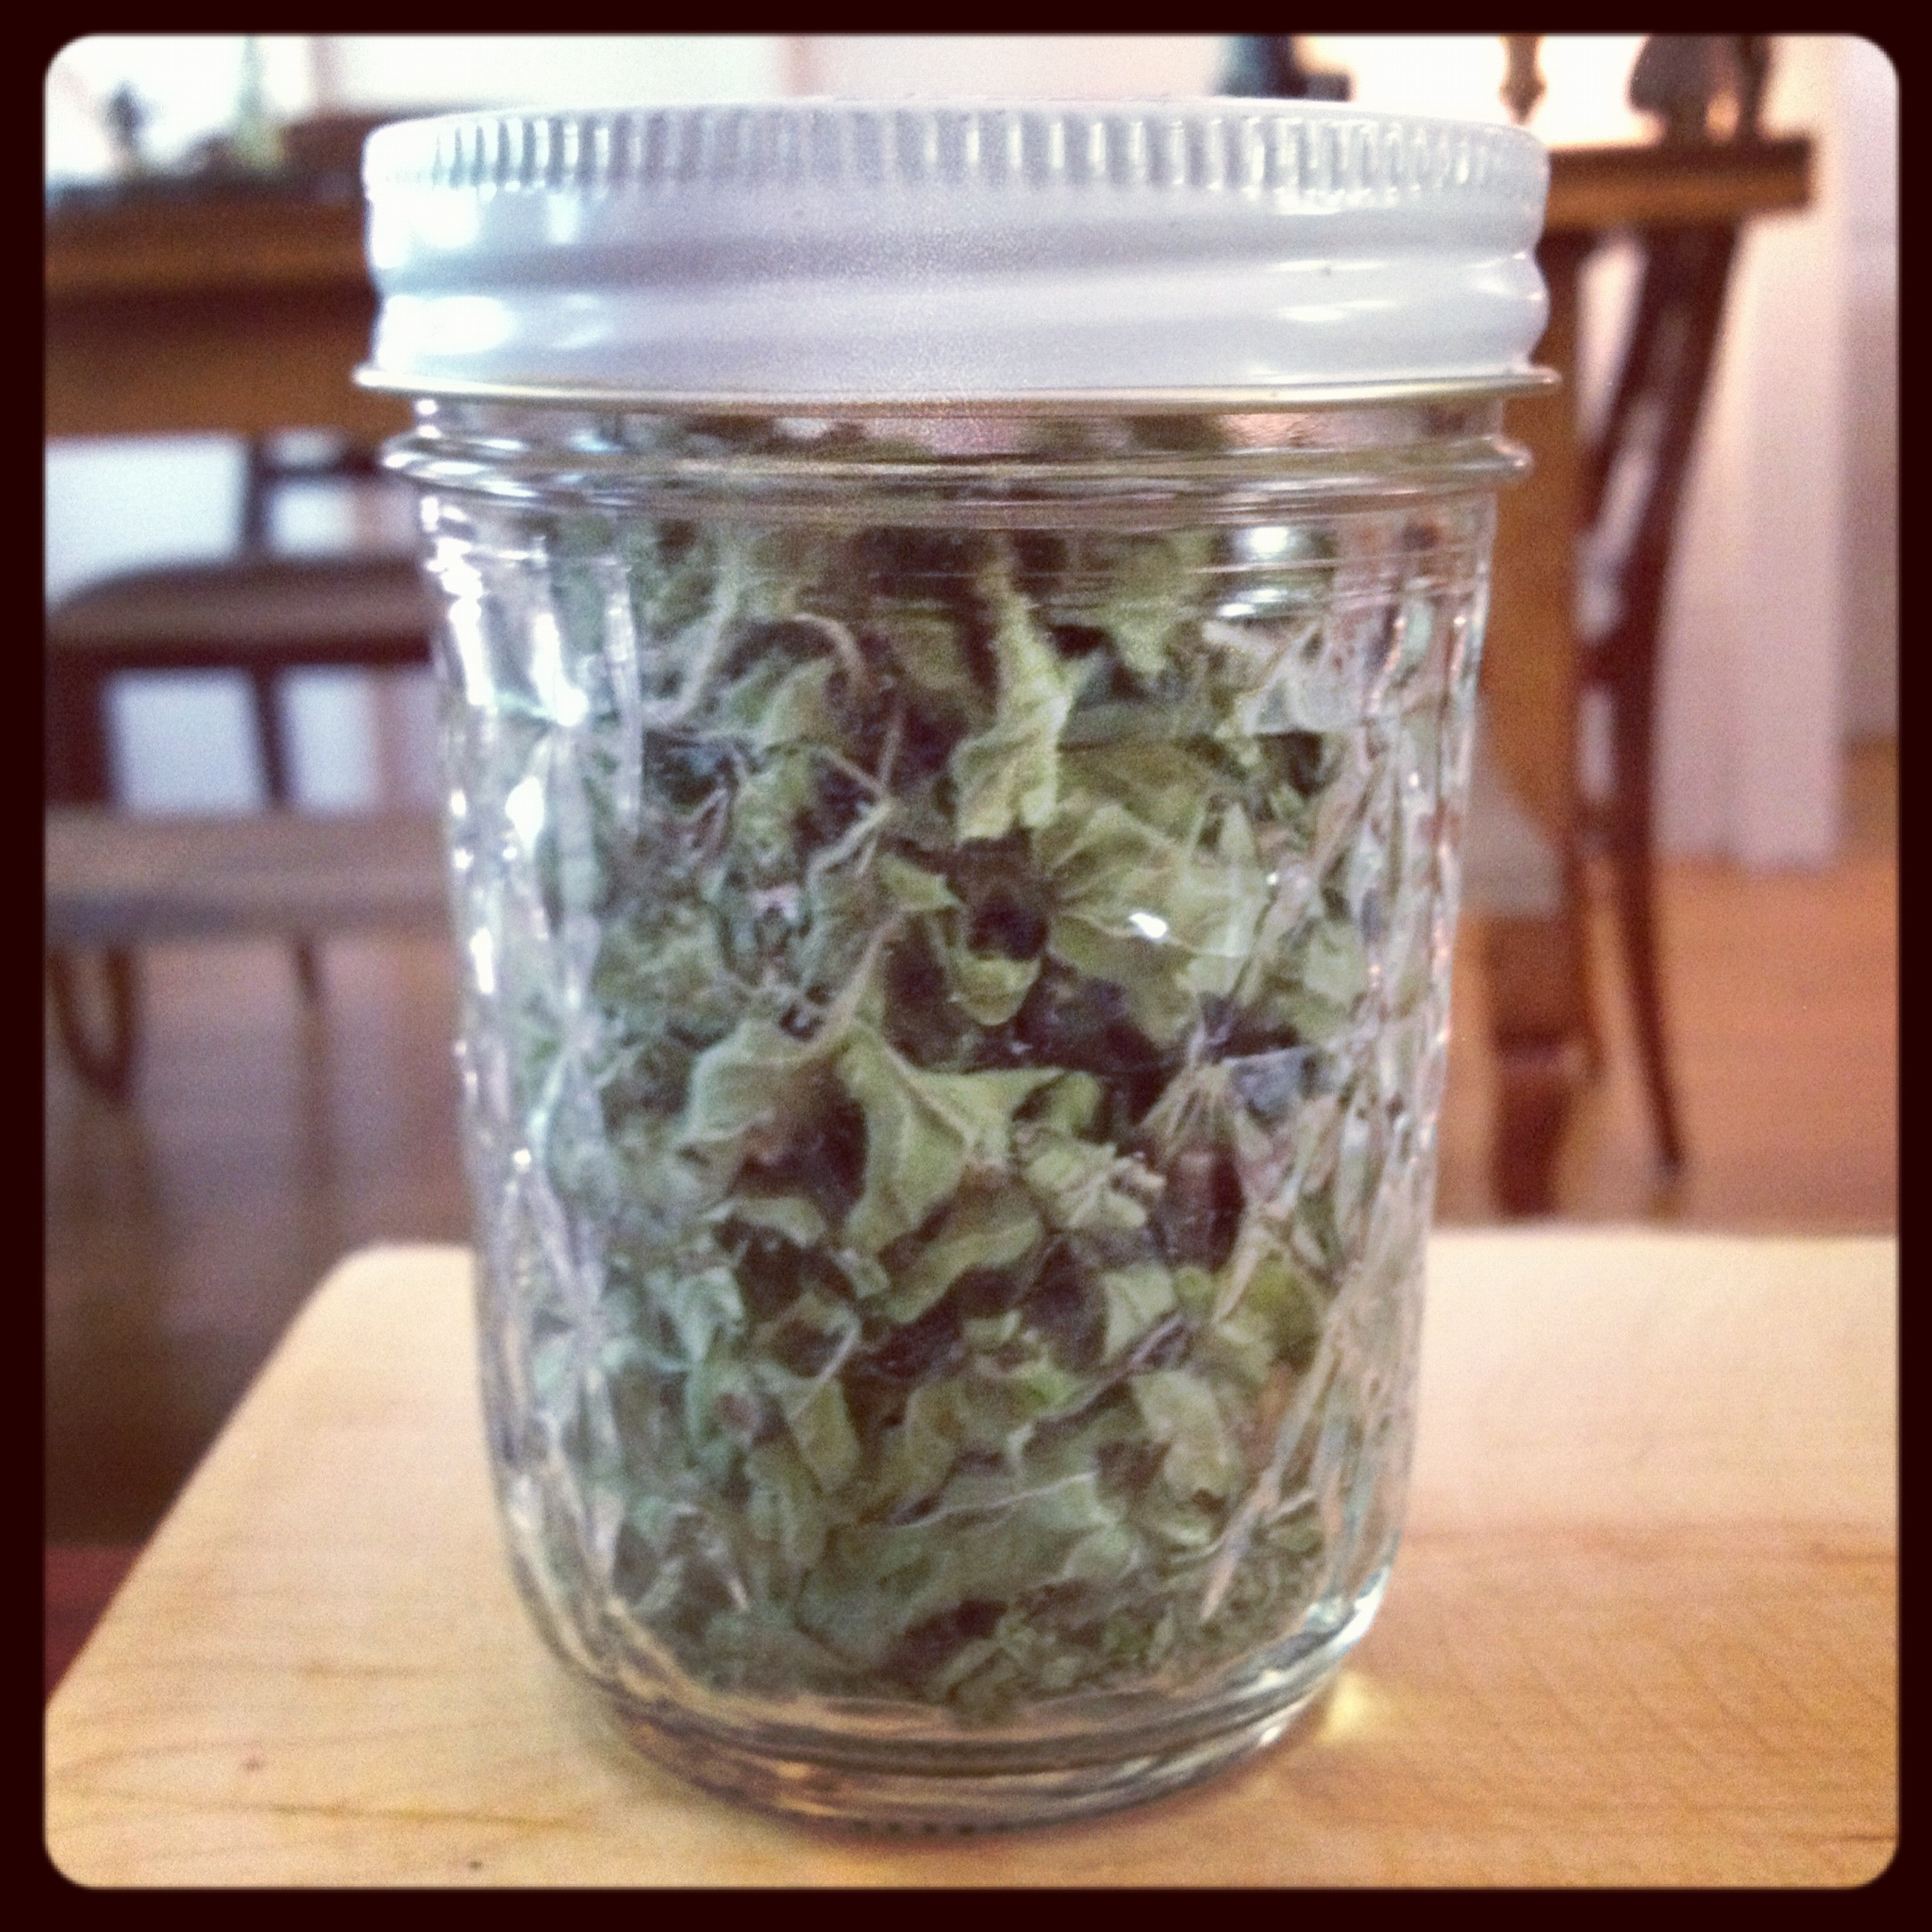 Dried oregano.